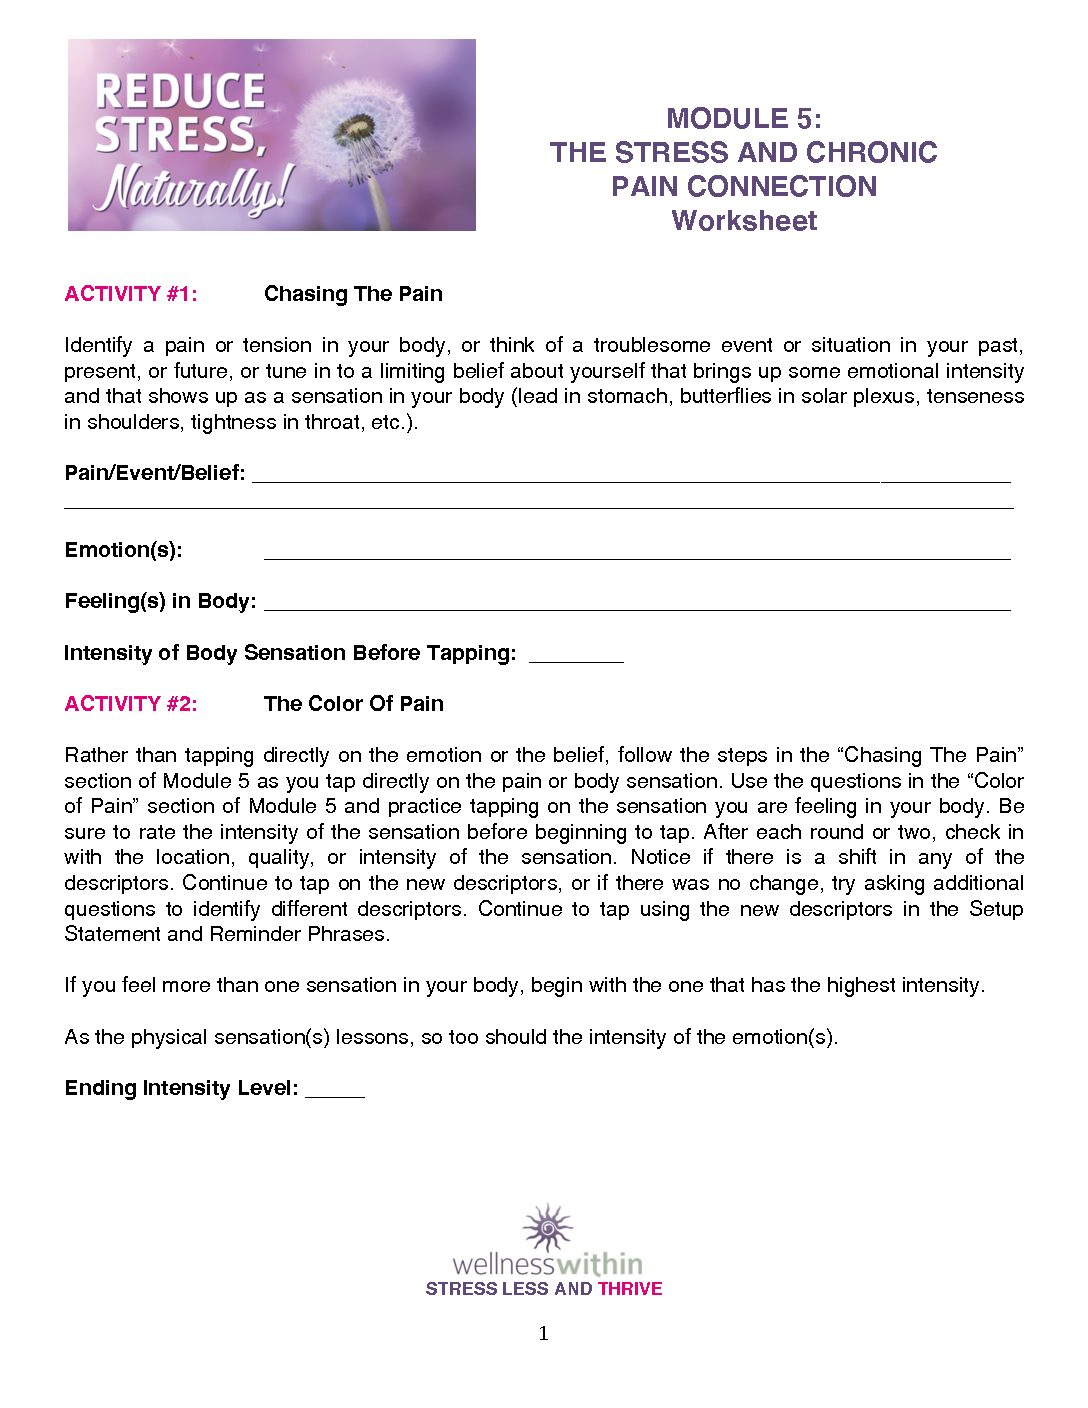 MODULE 5 WORKSHEETS - Wellness Within